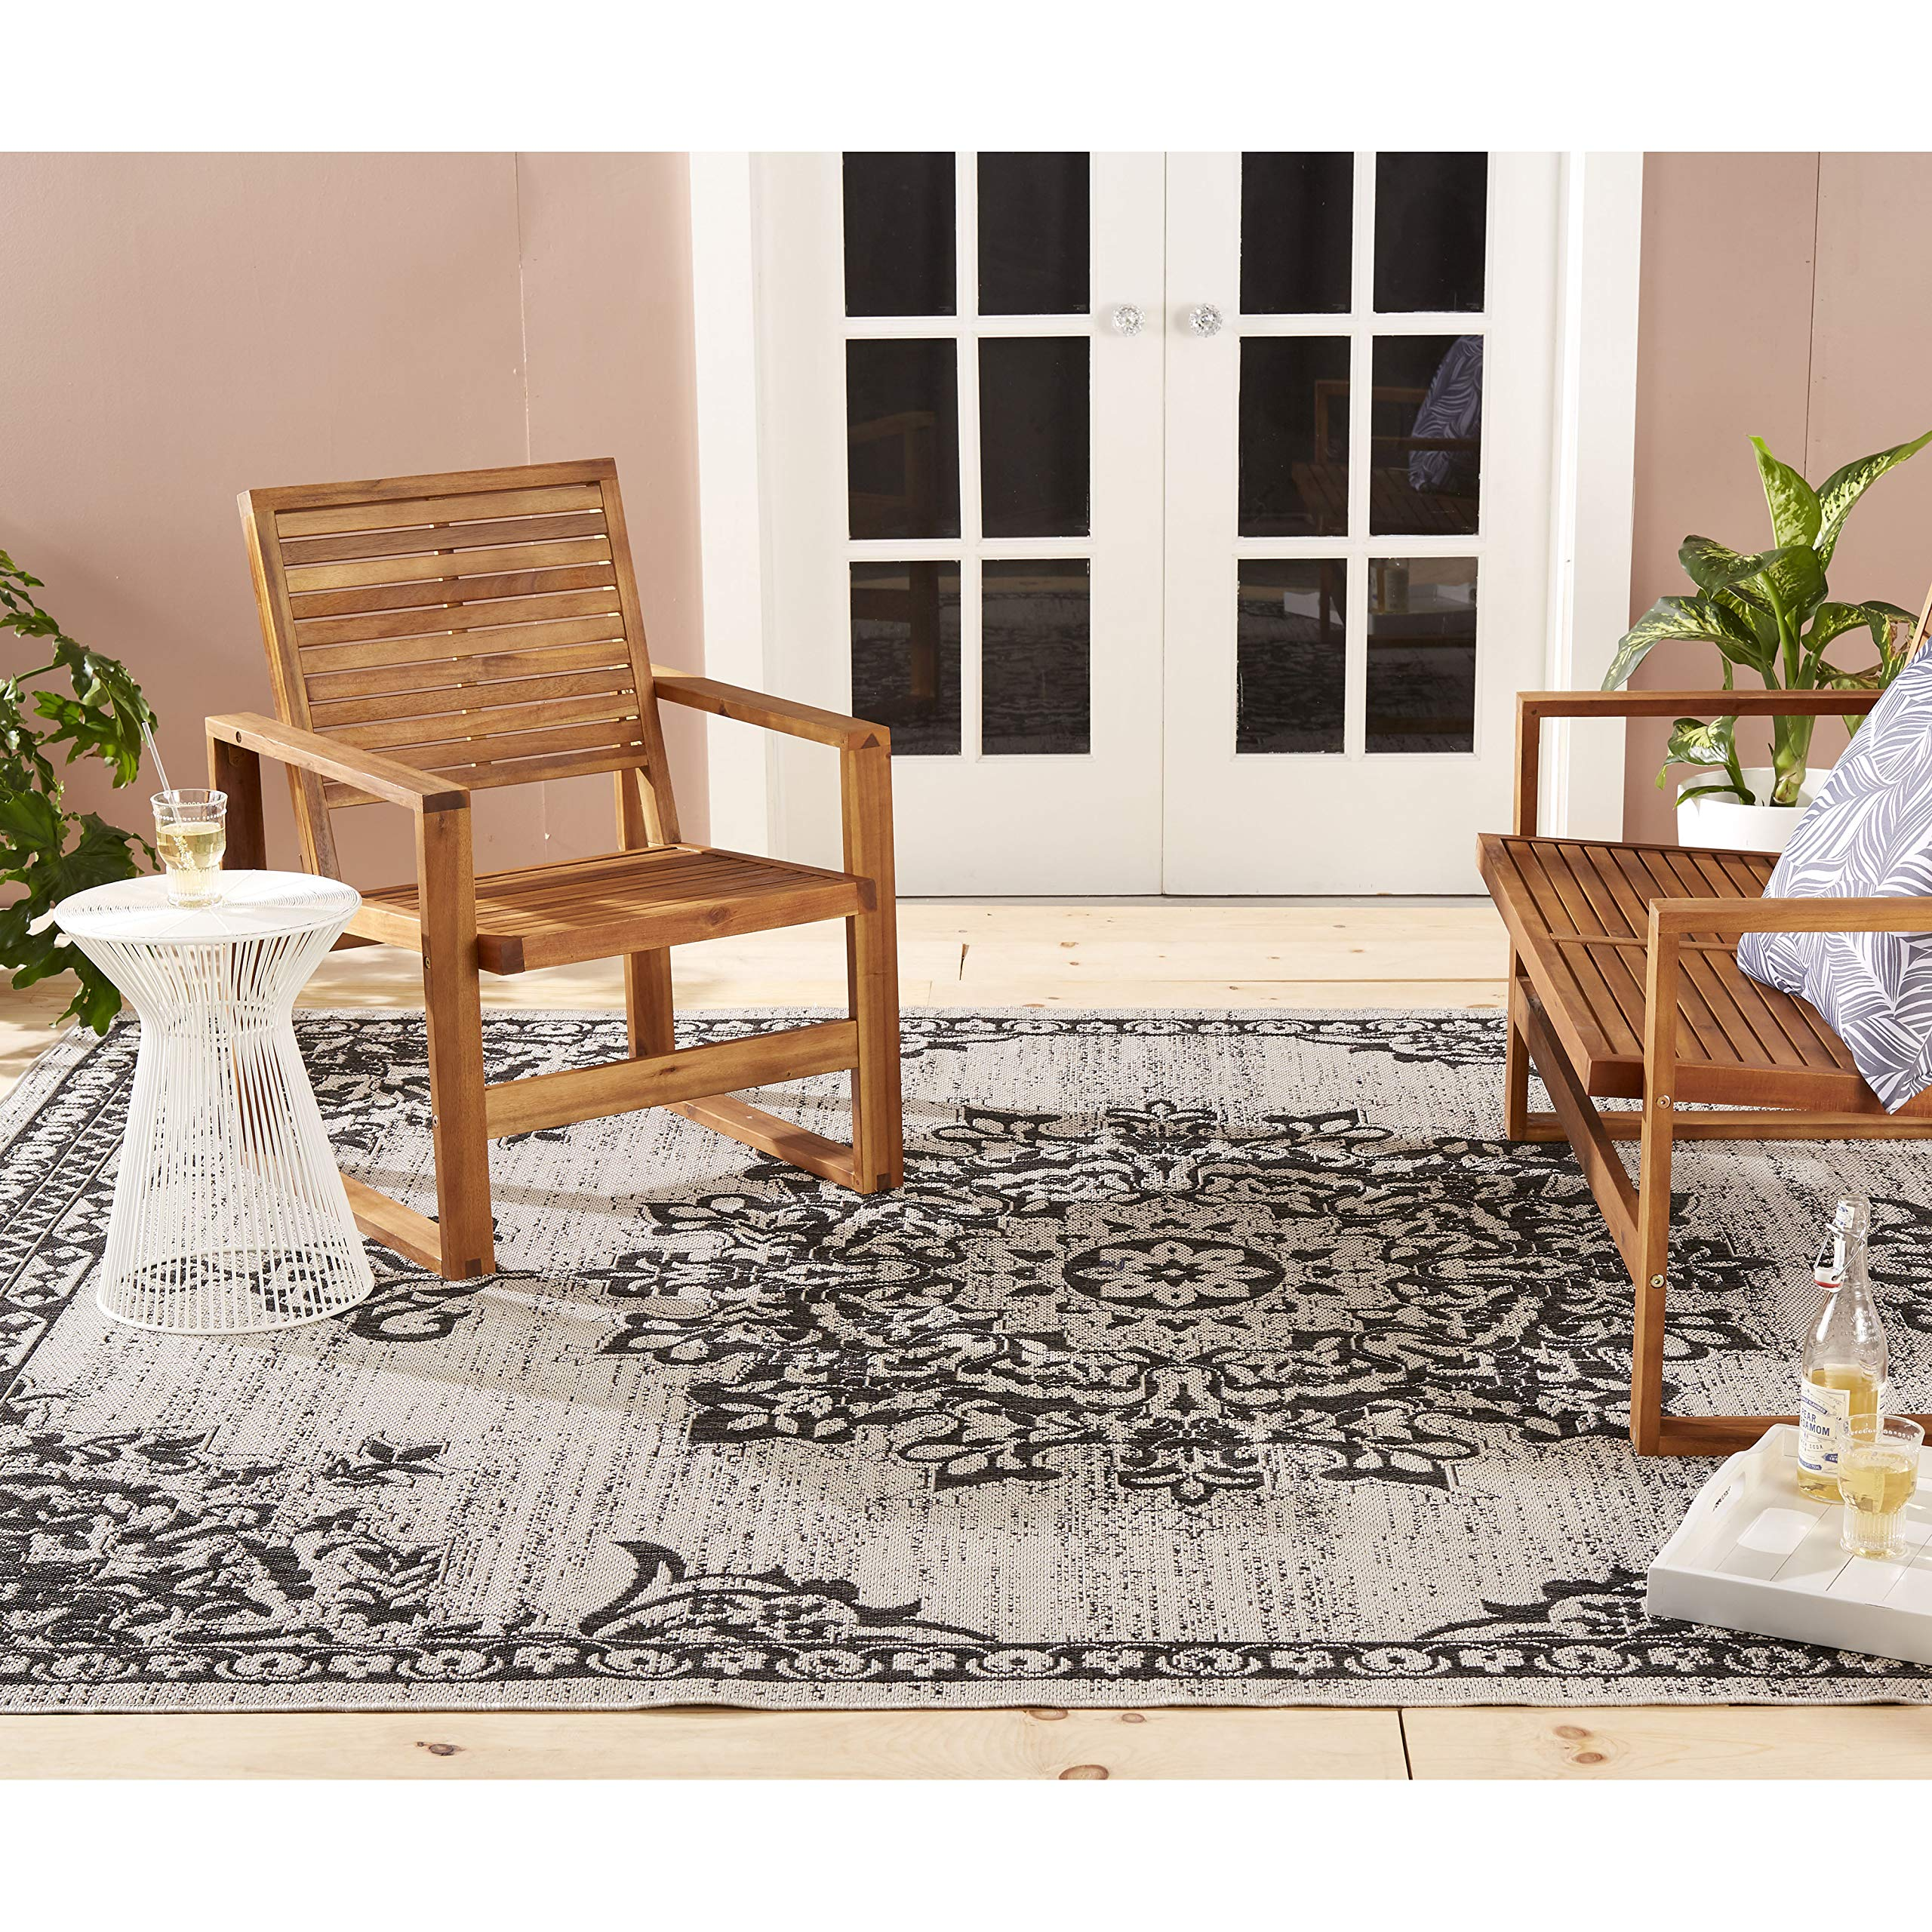 Home Dynamix Nicole Miller Patio Country Azalea Indoor/Outdoor Area Rug 7'9''x10'2'', Traditional Medallion Gray/Black by Home Dynamix (Image #1)